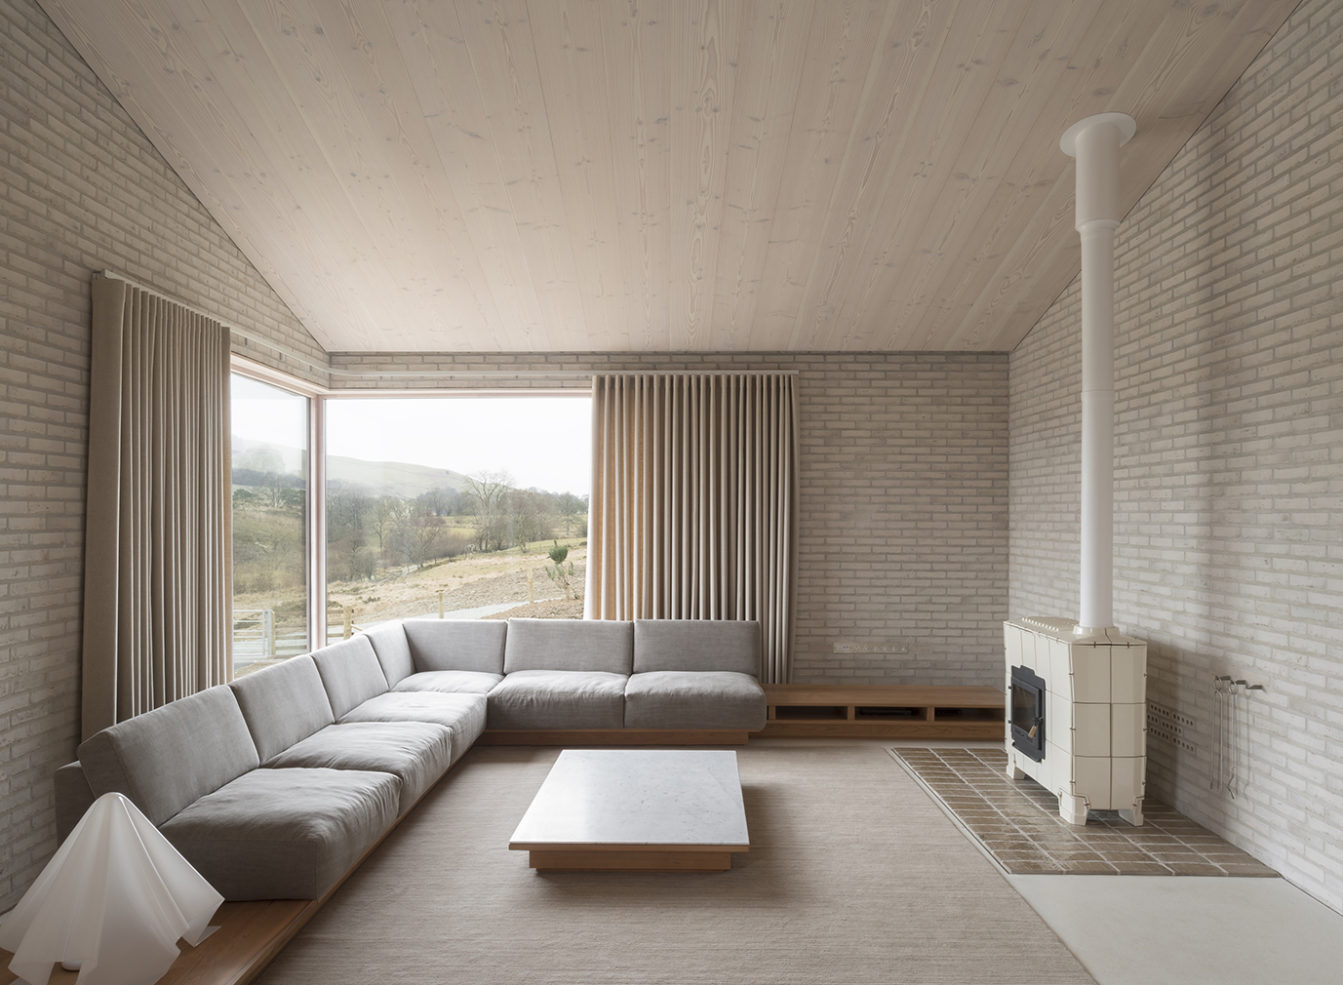 Tŷ Bywyd in Wales by John Pawson. Photography: Gilbert McCarragher / Living Architecture